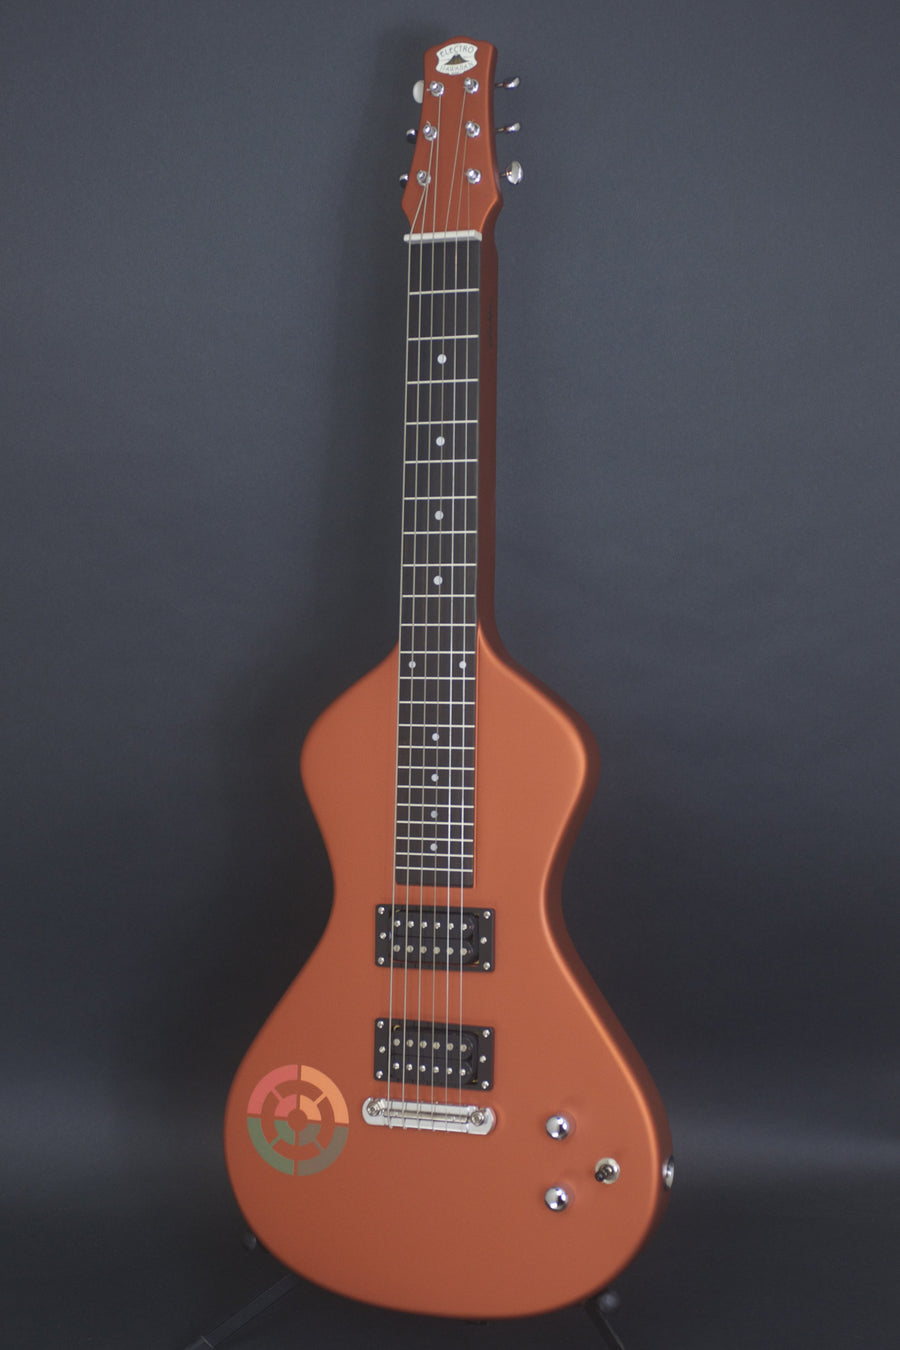 SOLD Asher Ben Harper and the Innocent Criminals Special Edition Lap Steel, Burnt Liquid Orange